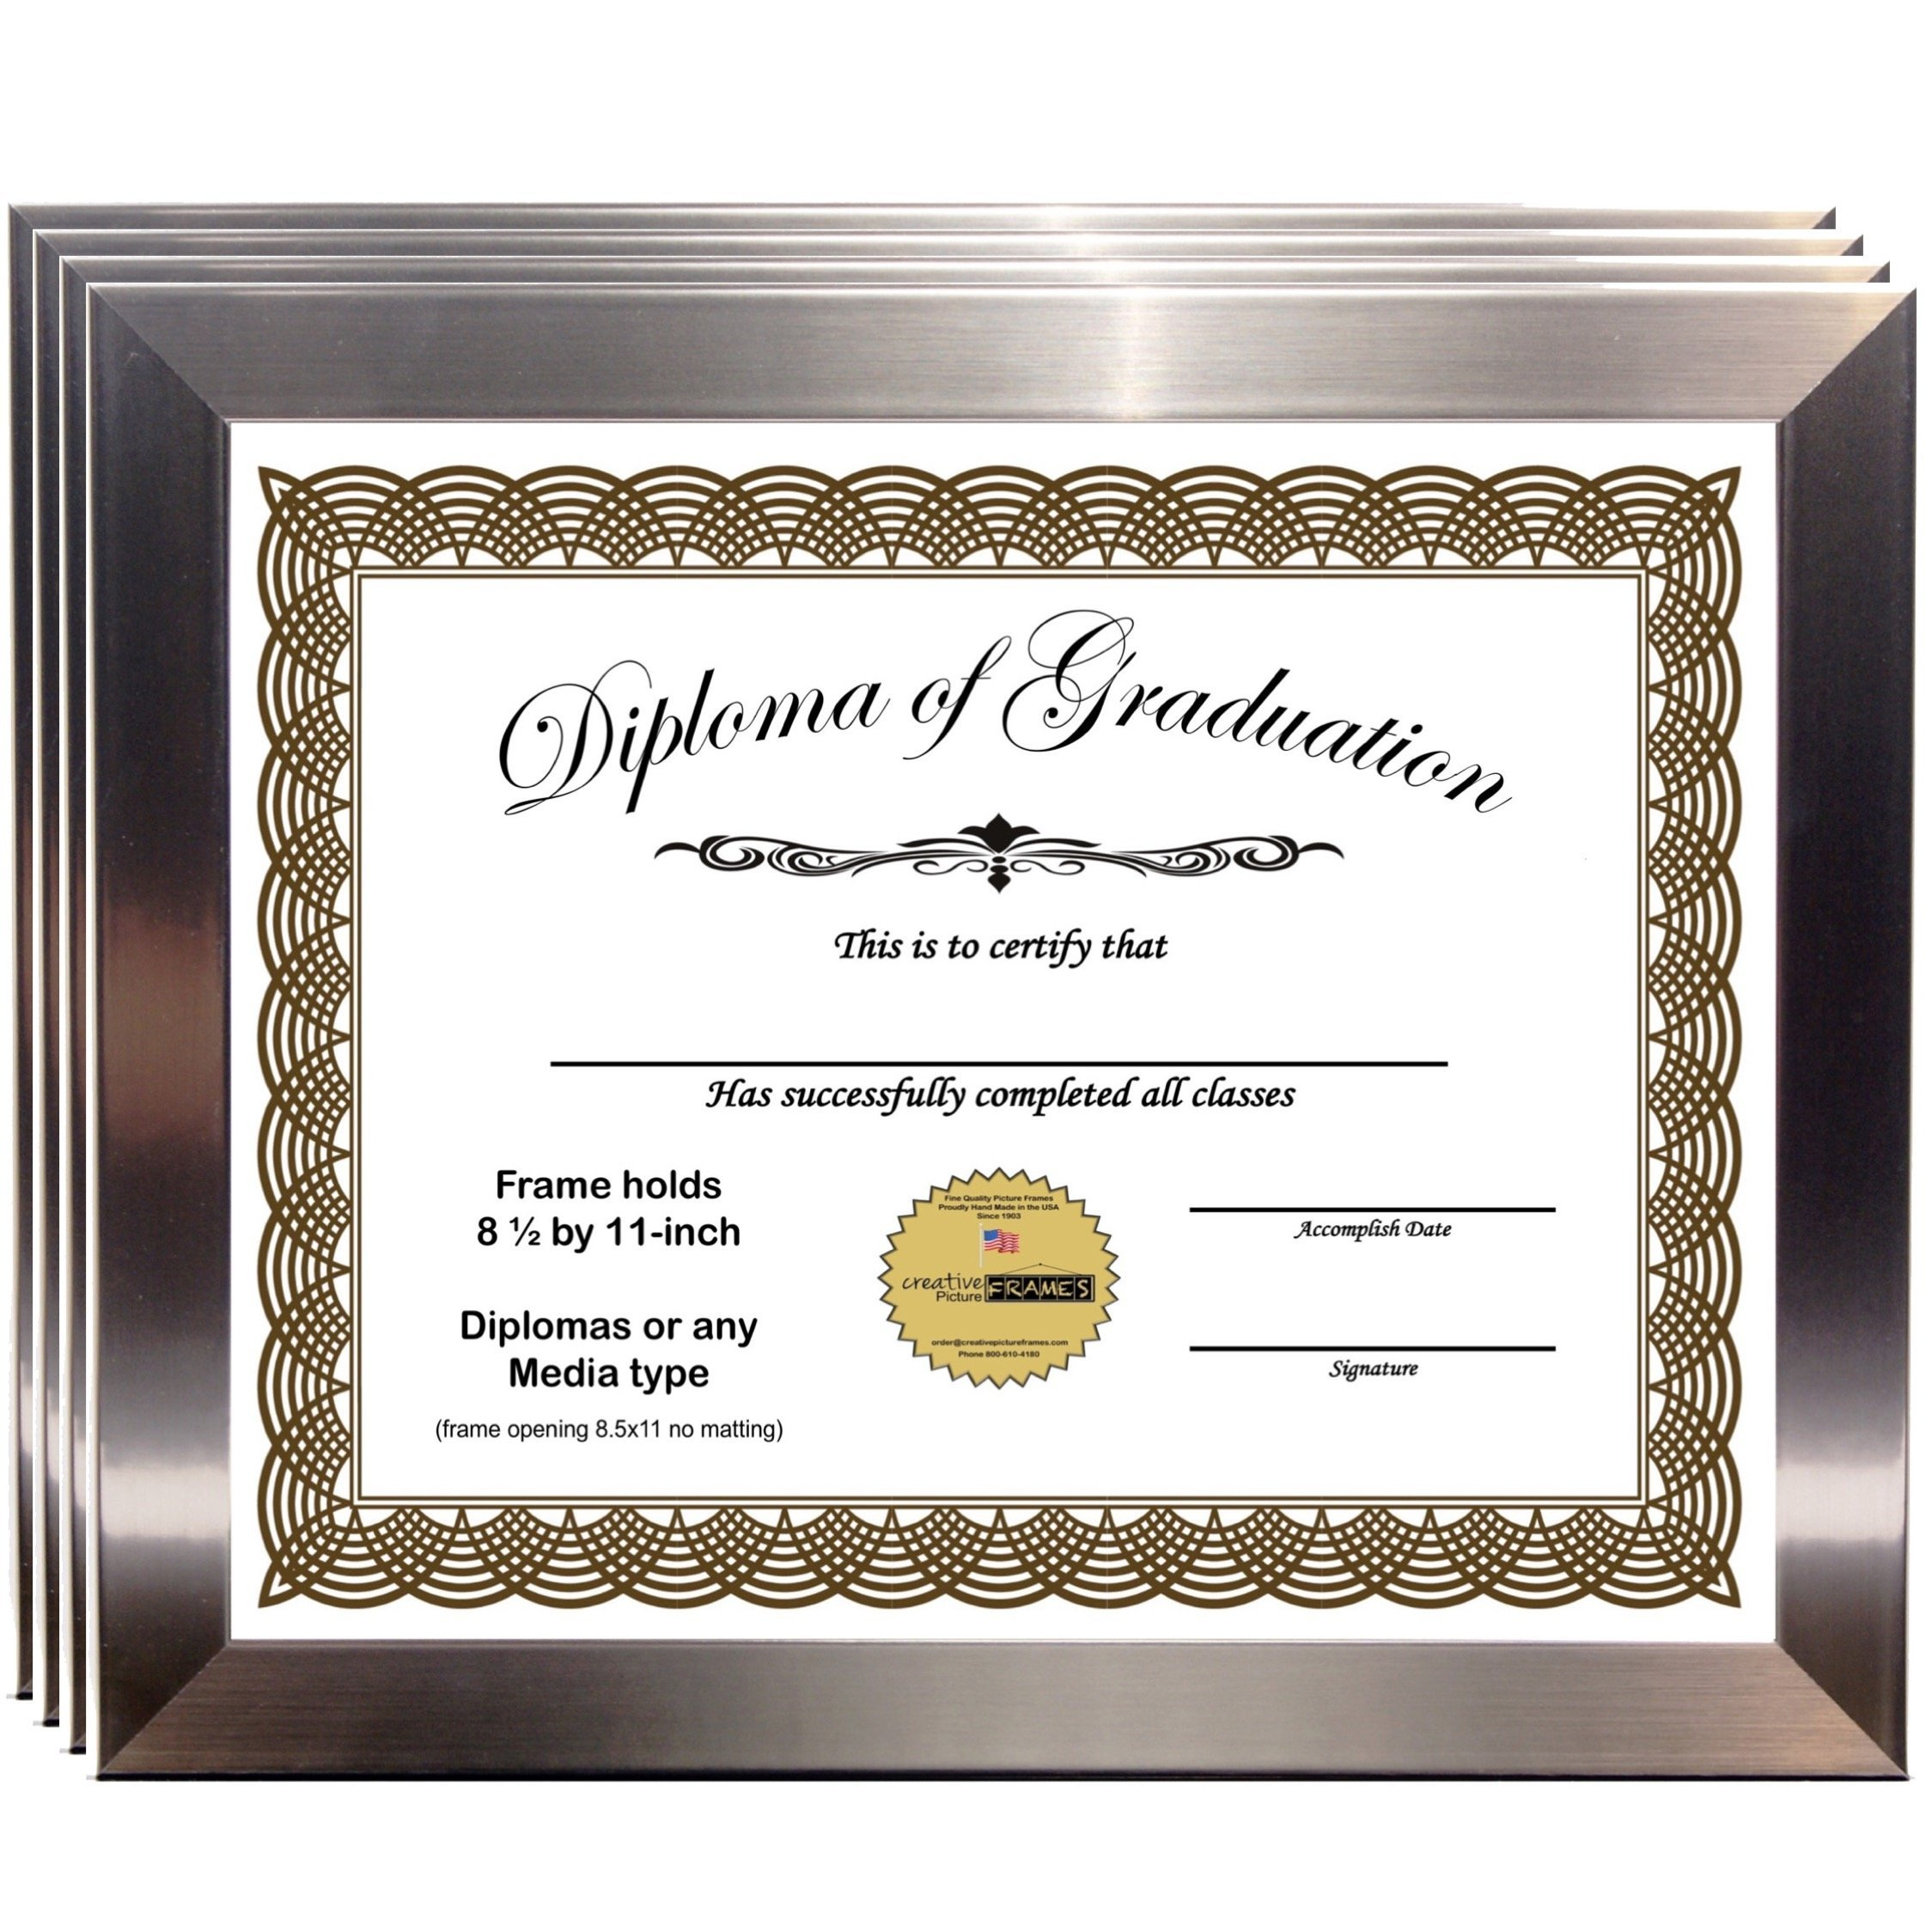 CreativePF [6I9P-8.5x11ss] Stainless Steel Document Frame Displays 8.5 by 11-inch Certificate, Graduation, University, Diploma Frames with Stand & Wall Hanger (Pack of 4)